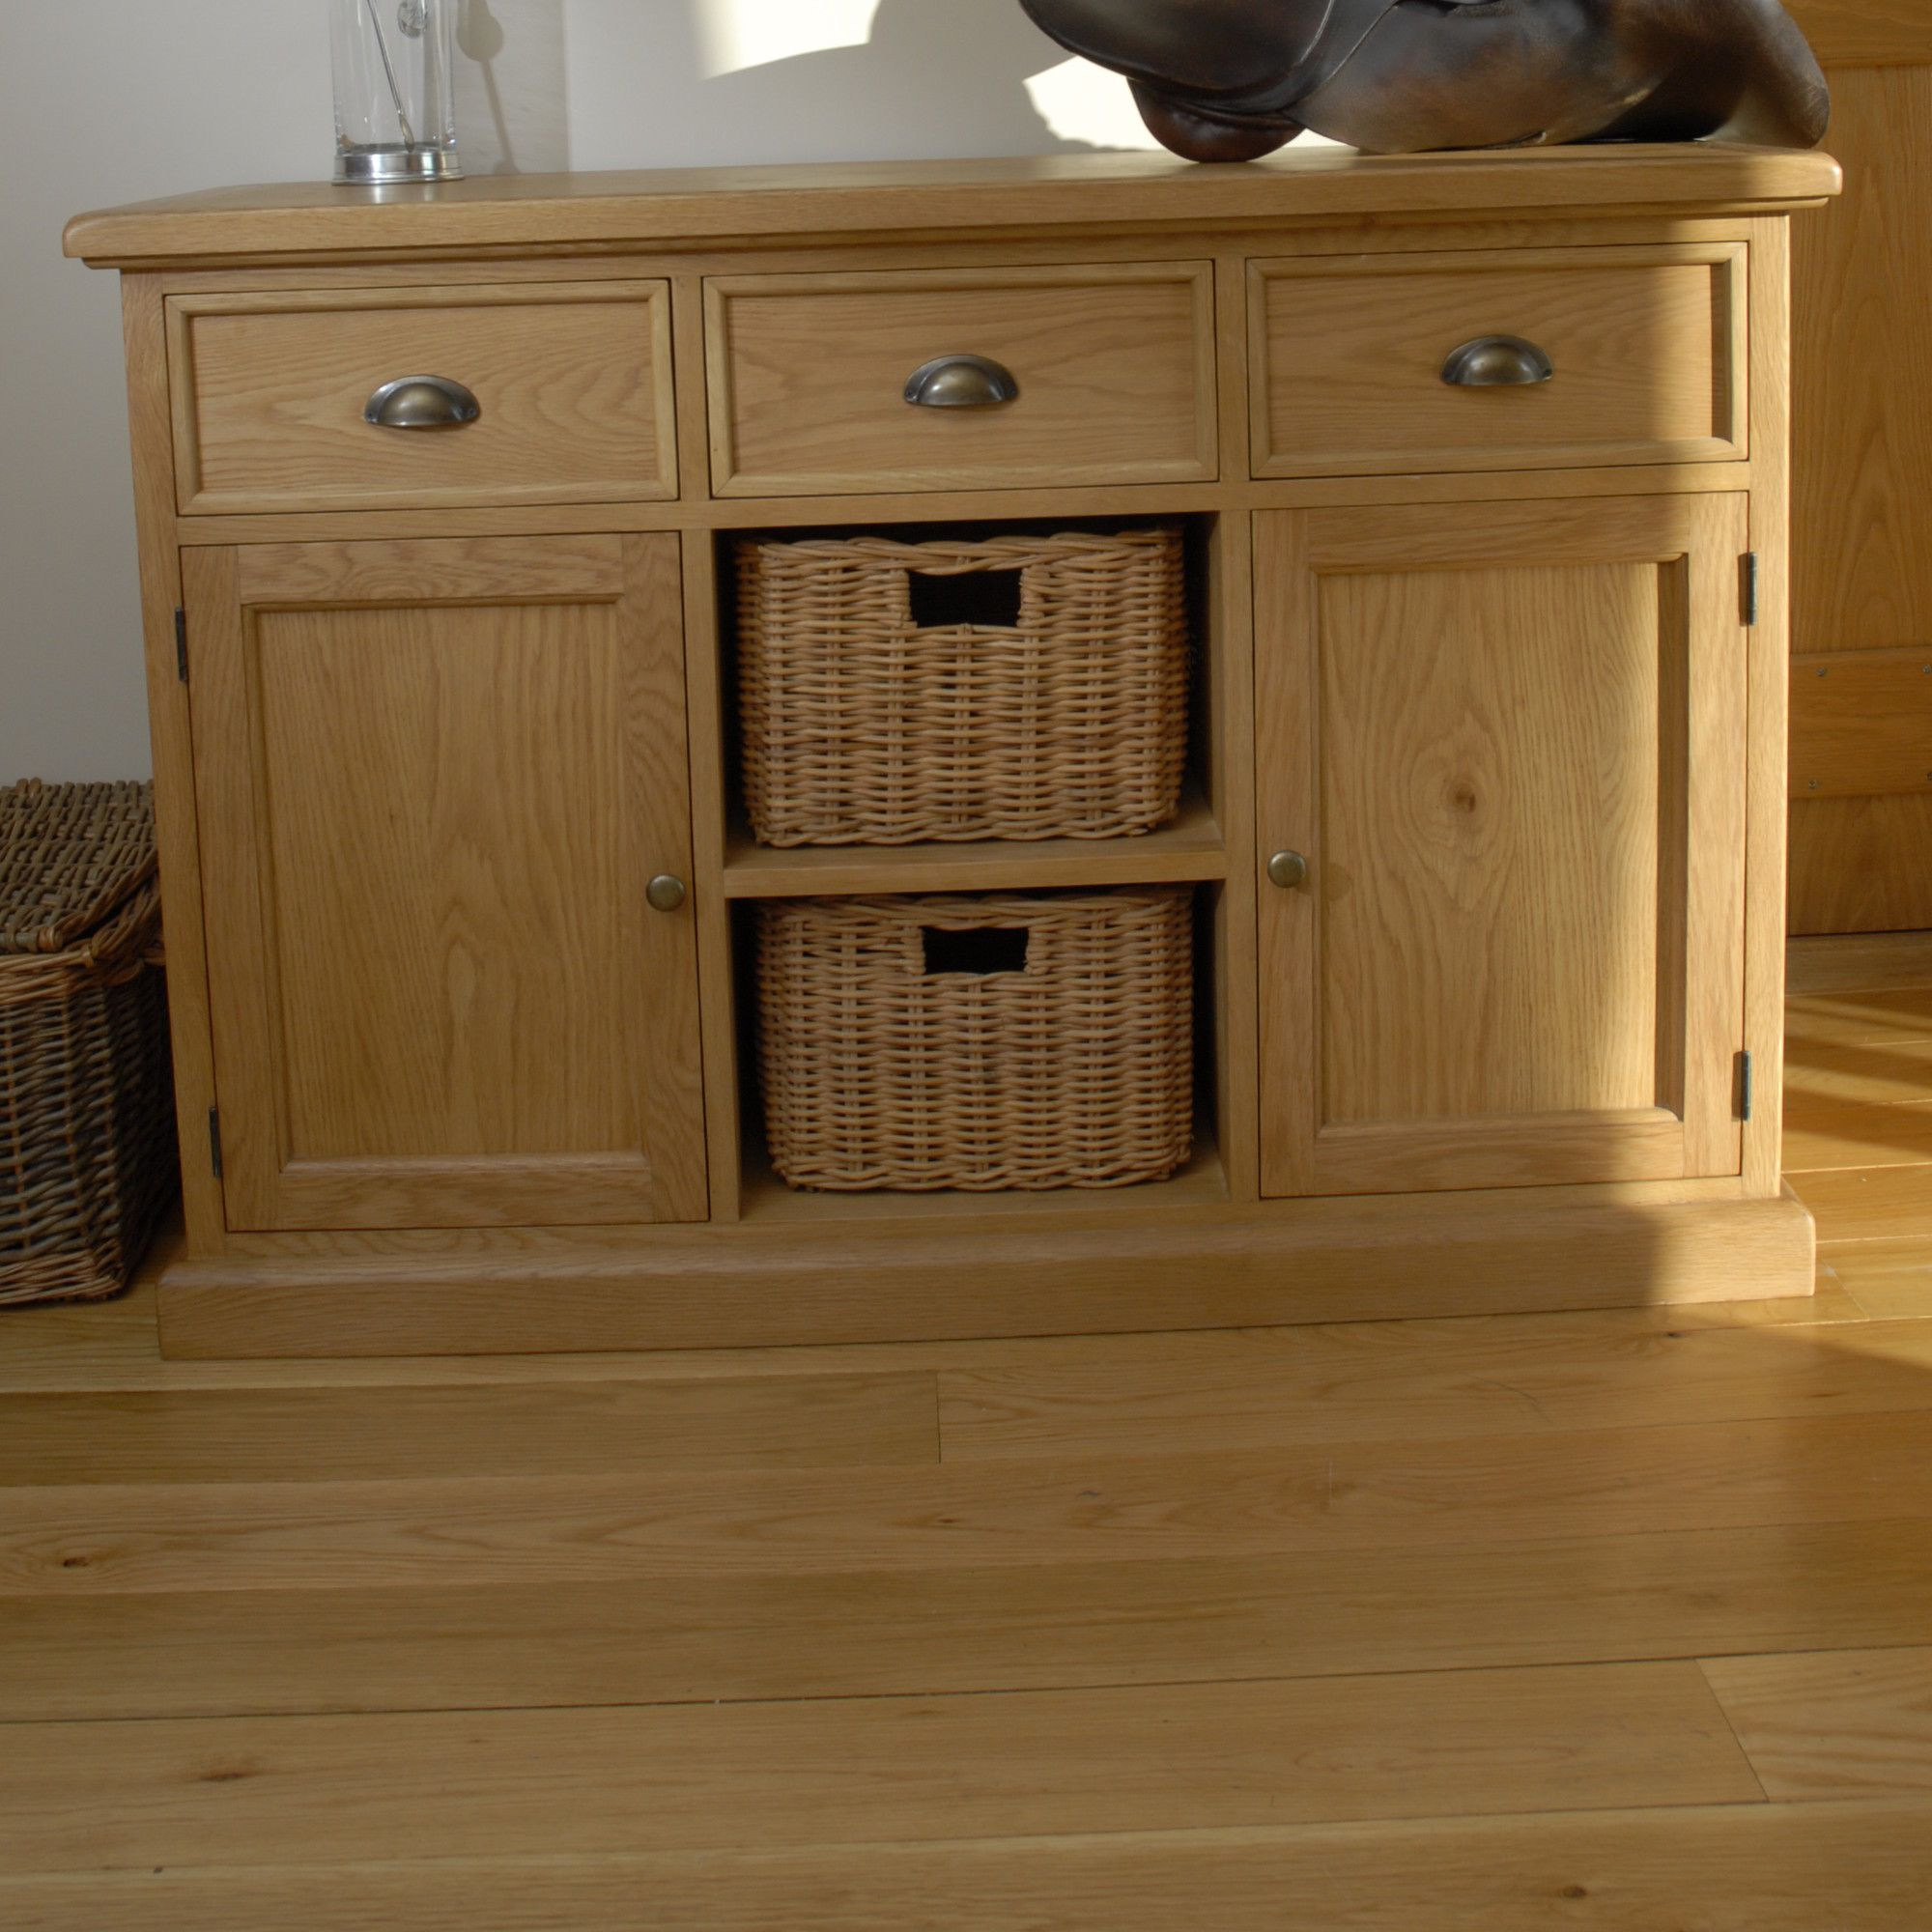 Oceans Apart Victoria Oak Sideboard at Tesco Direct